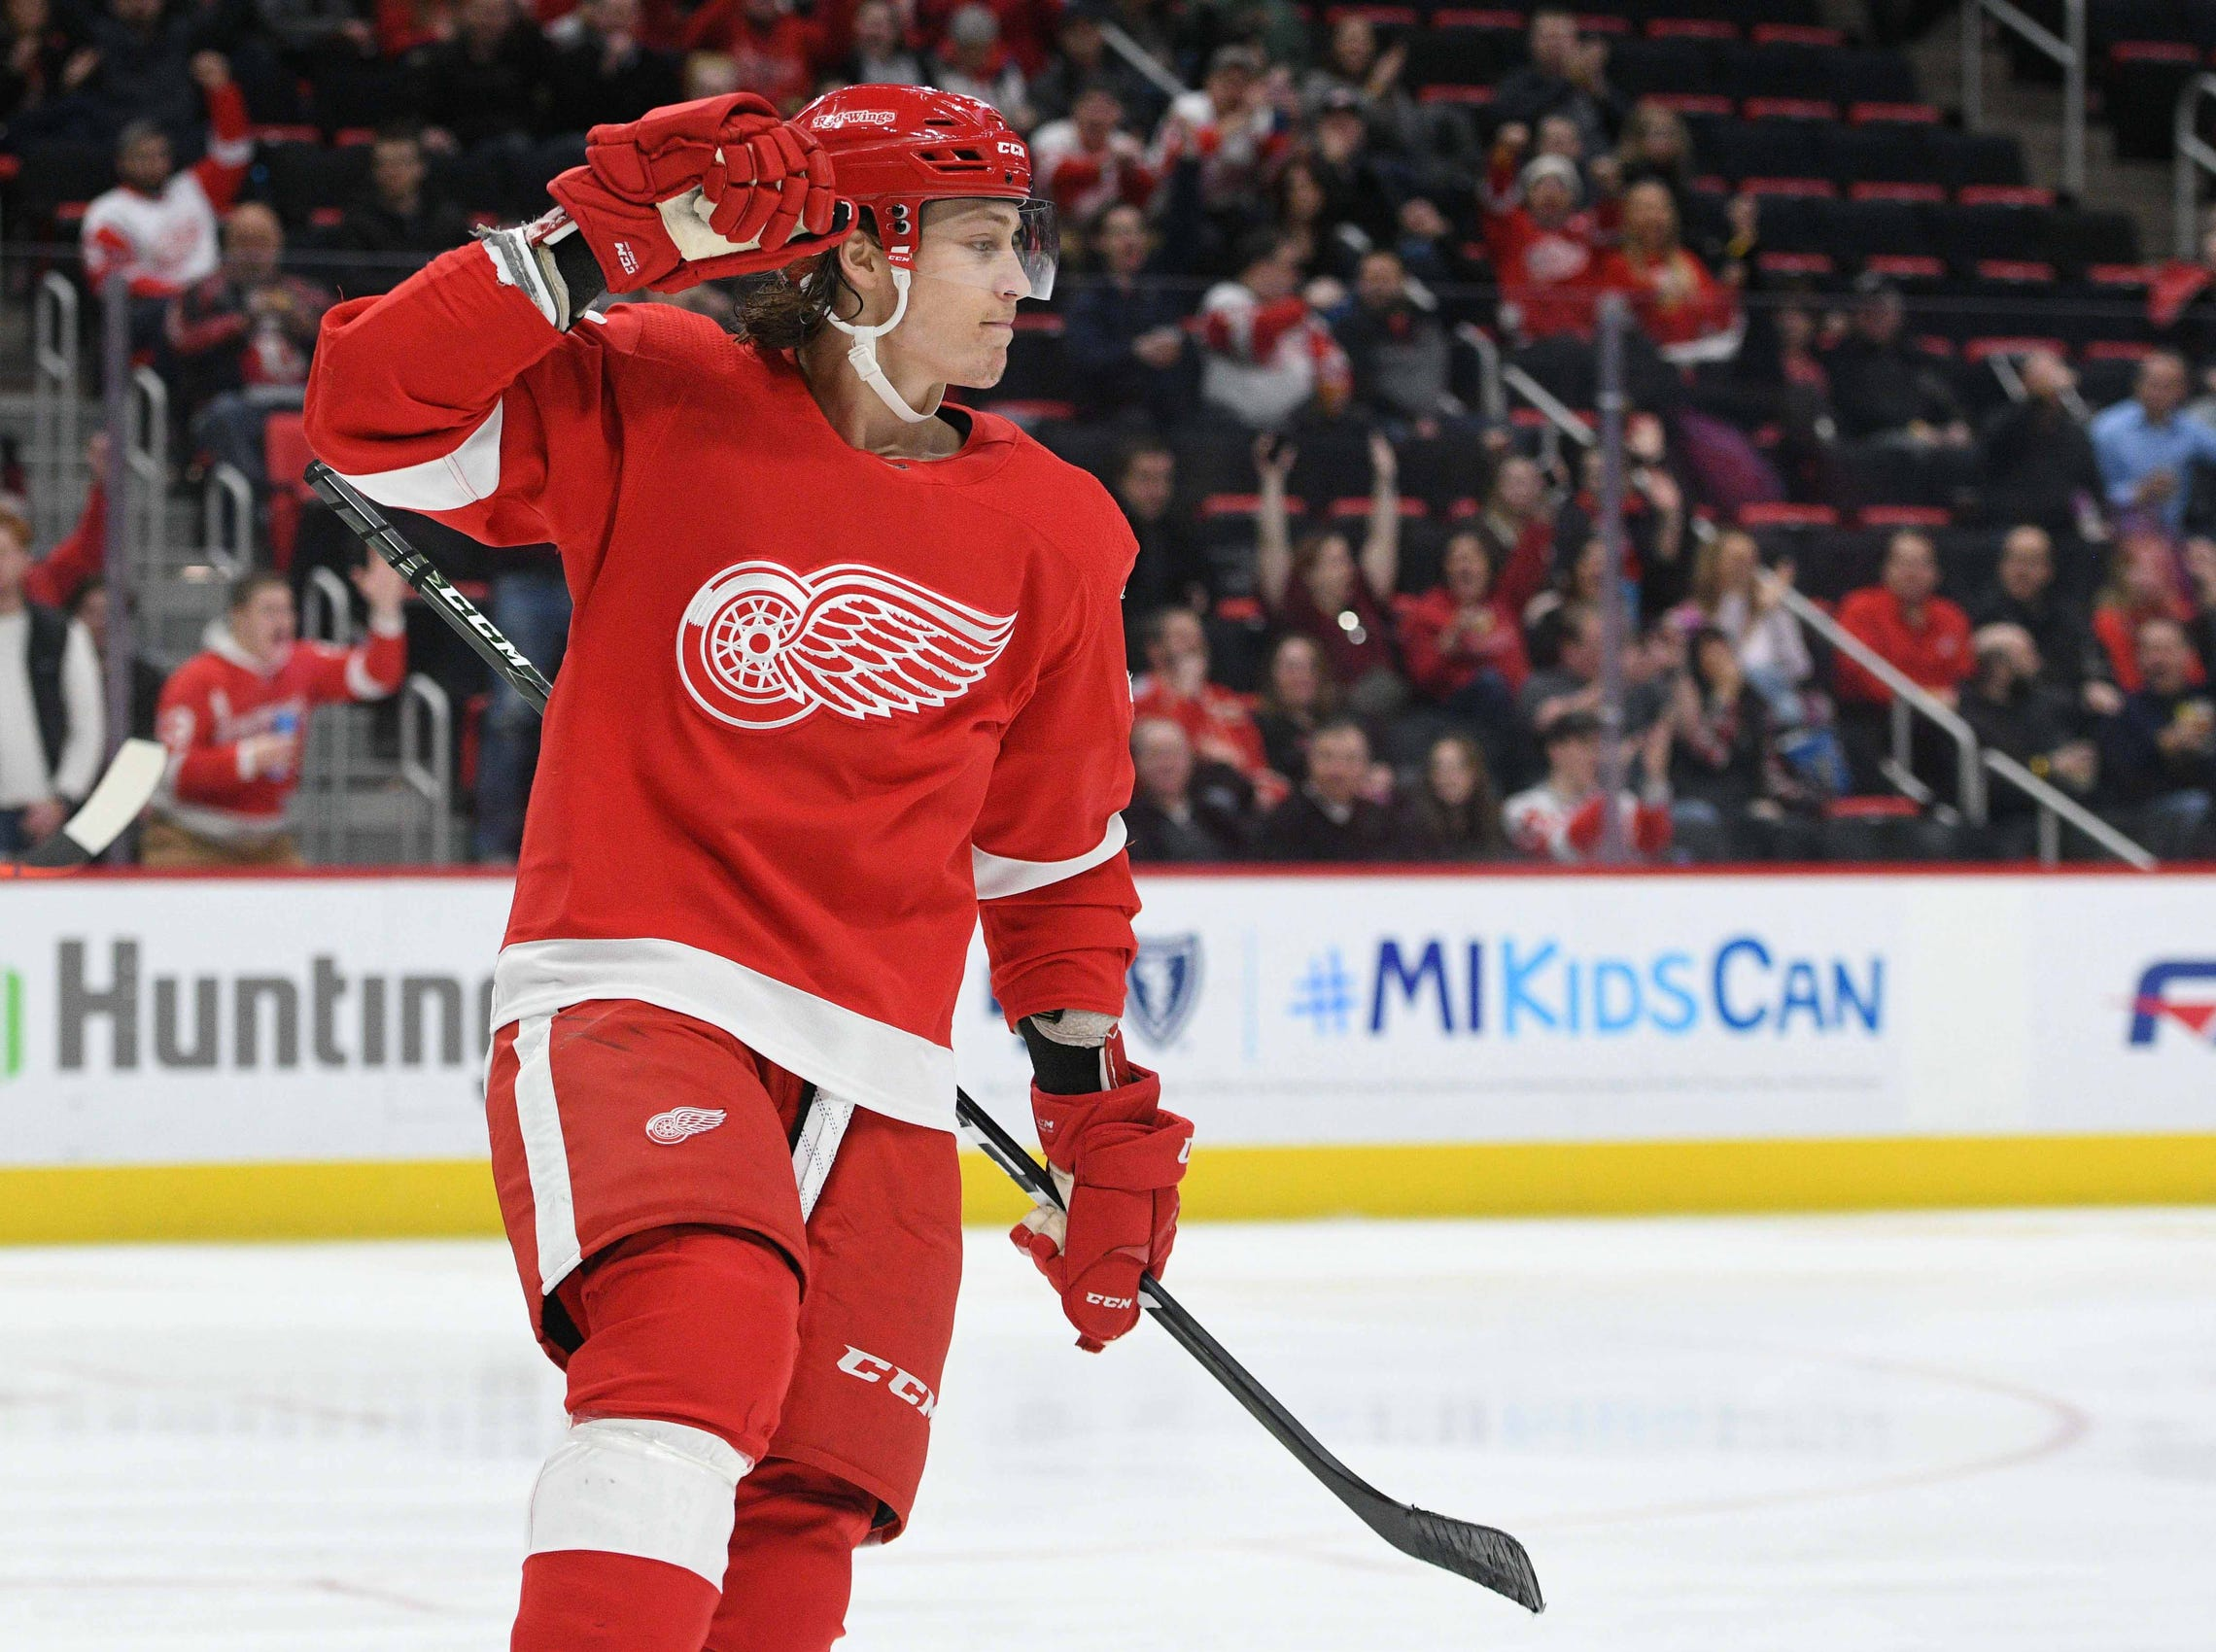 Detroit Red Wings left wing Tyler Bertuzzi (59) celebrates his goal during the second period against the Minnesota Wild at Little Caesars Arena on Feb. 22, 2019.